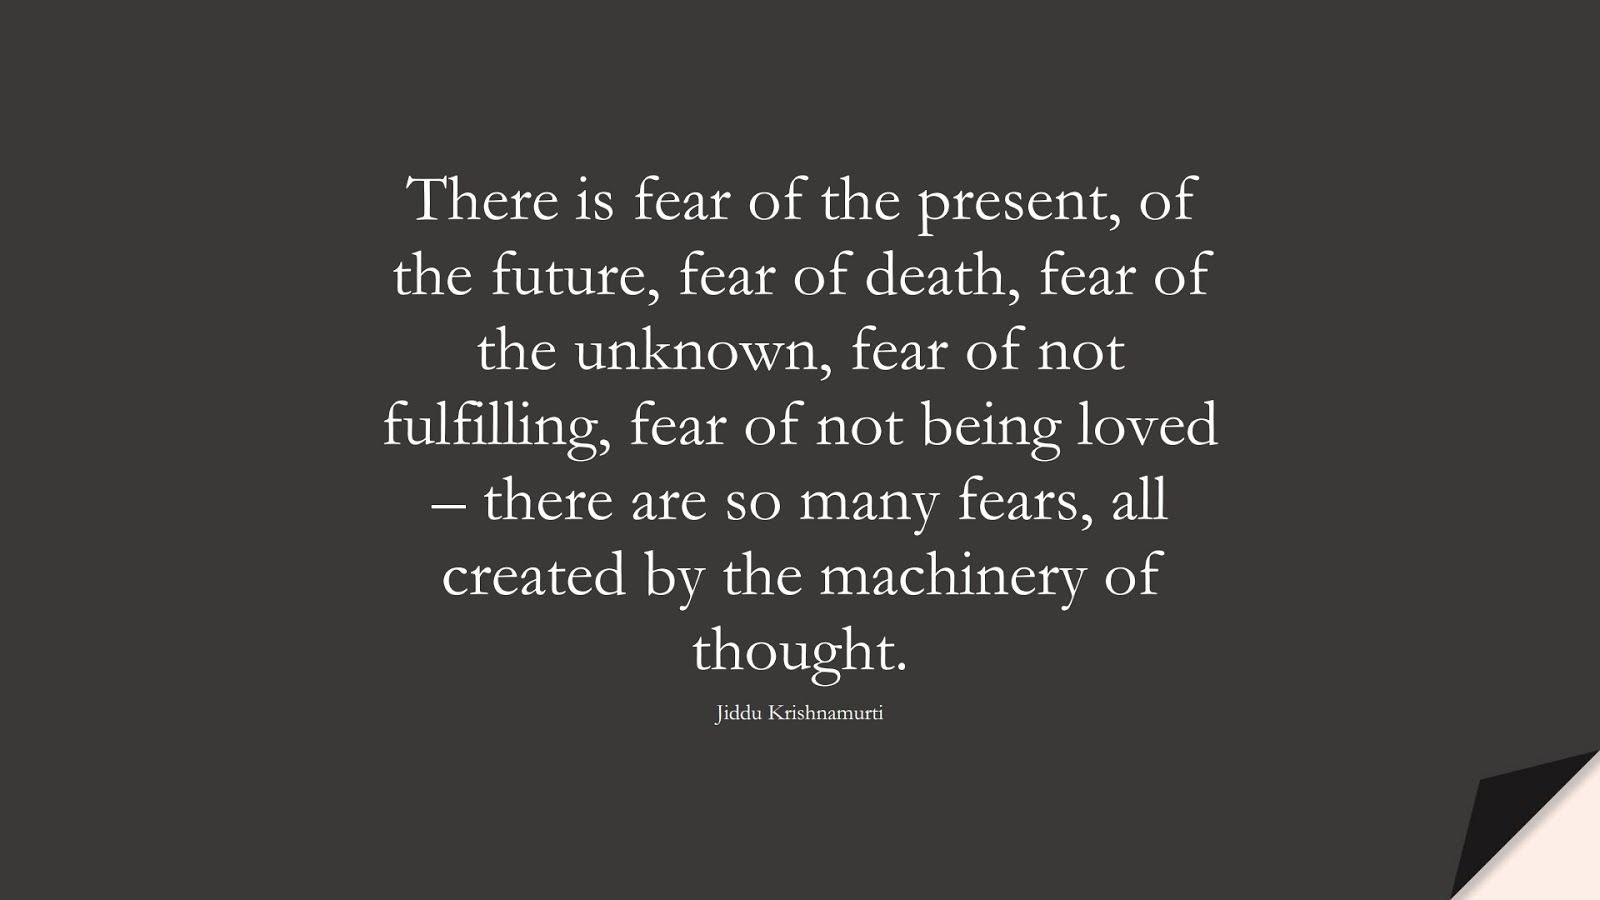 There is fear of the present, of the future, fear of death, fear of the unknown, fear of not fulfilling, fear of not being loved – there are so many fears, all created by the machinery of thought. (Jiddu Krishnamurti);  #AnxietyQuotes